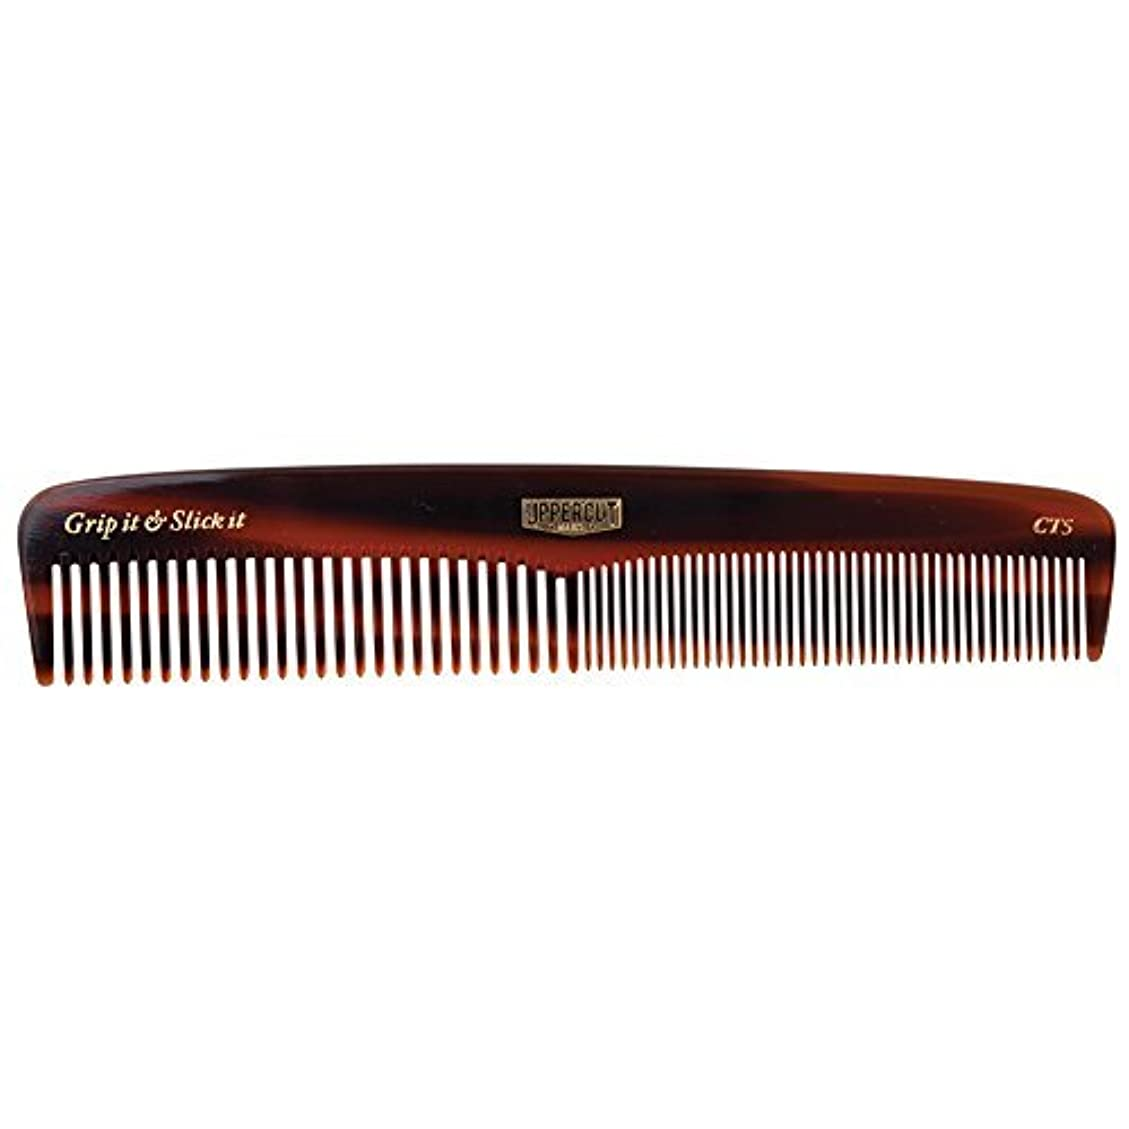 戦争ページラボUppercut Deluxe CT5 Tortoise Shell Comb - Easy to Use, Pocket Sized - Grip It & Slick It [並行輸入品]